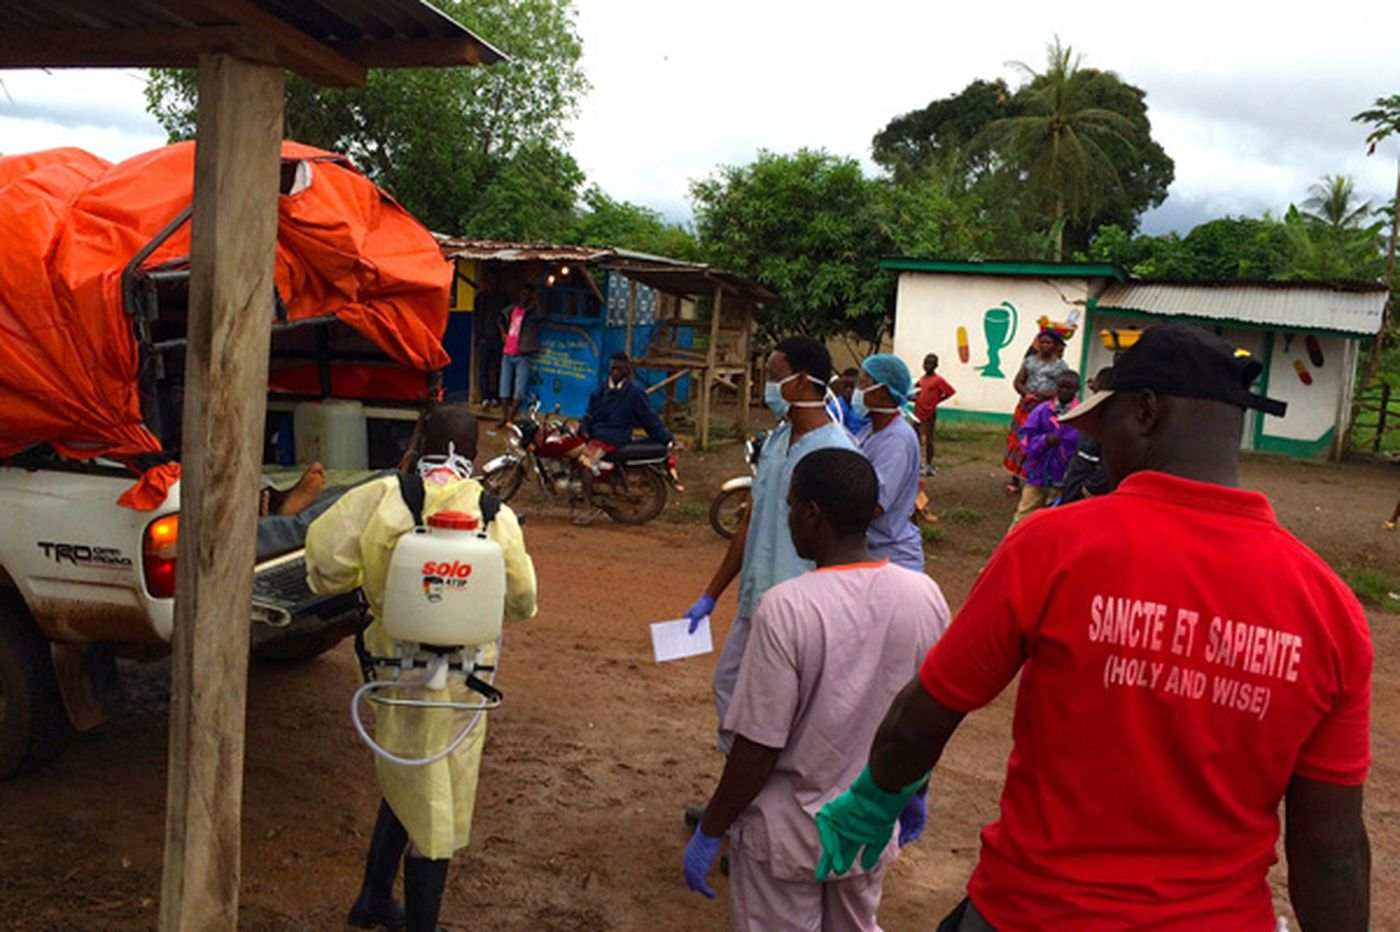 Report from an Ebola treatment center